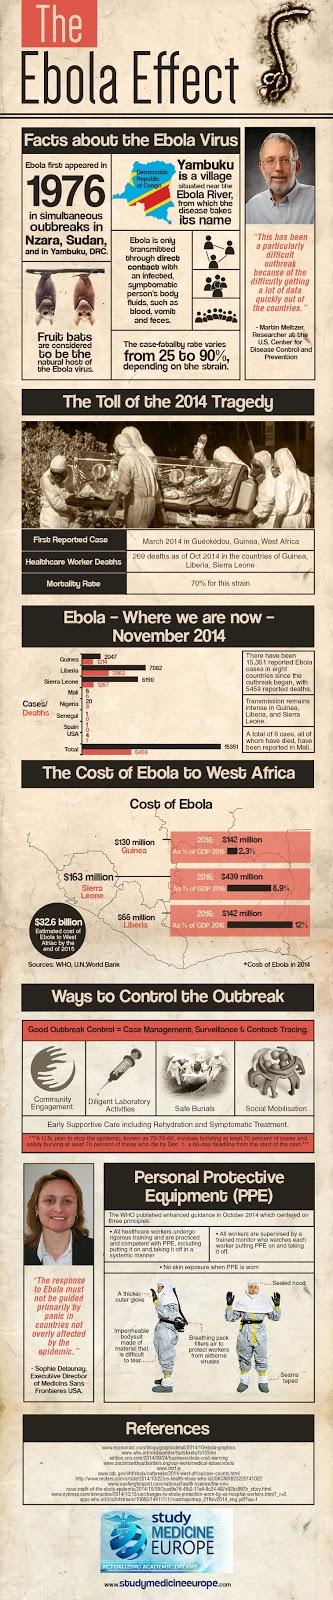 Ebola - The Effects